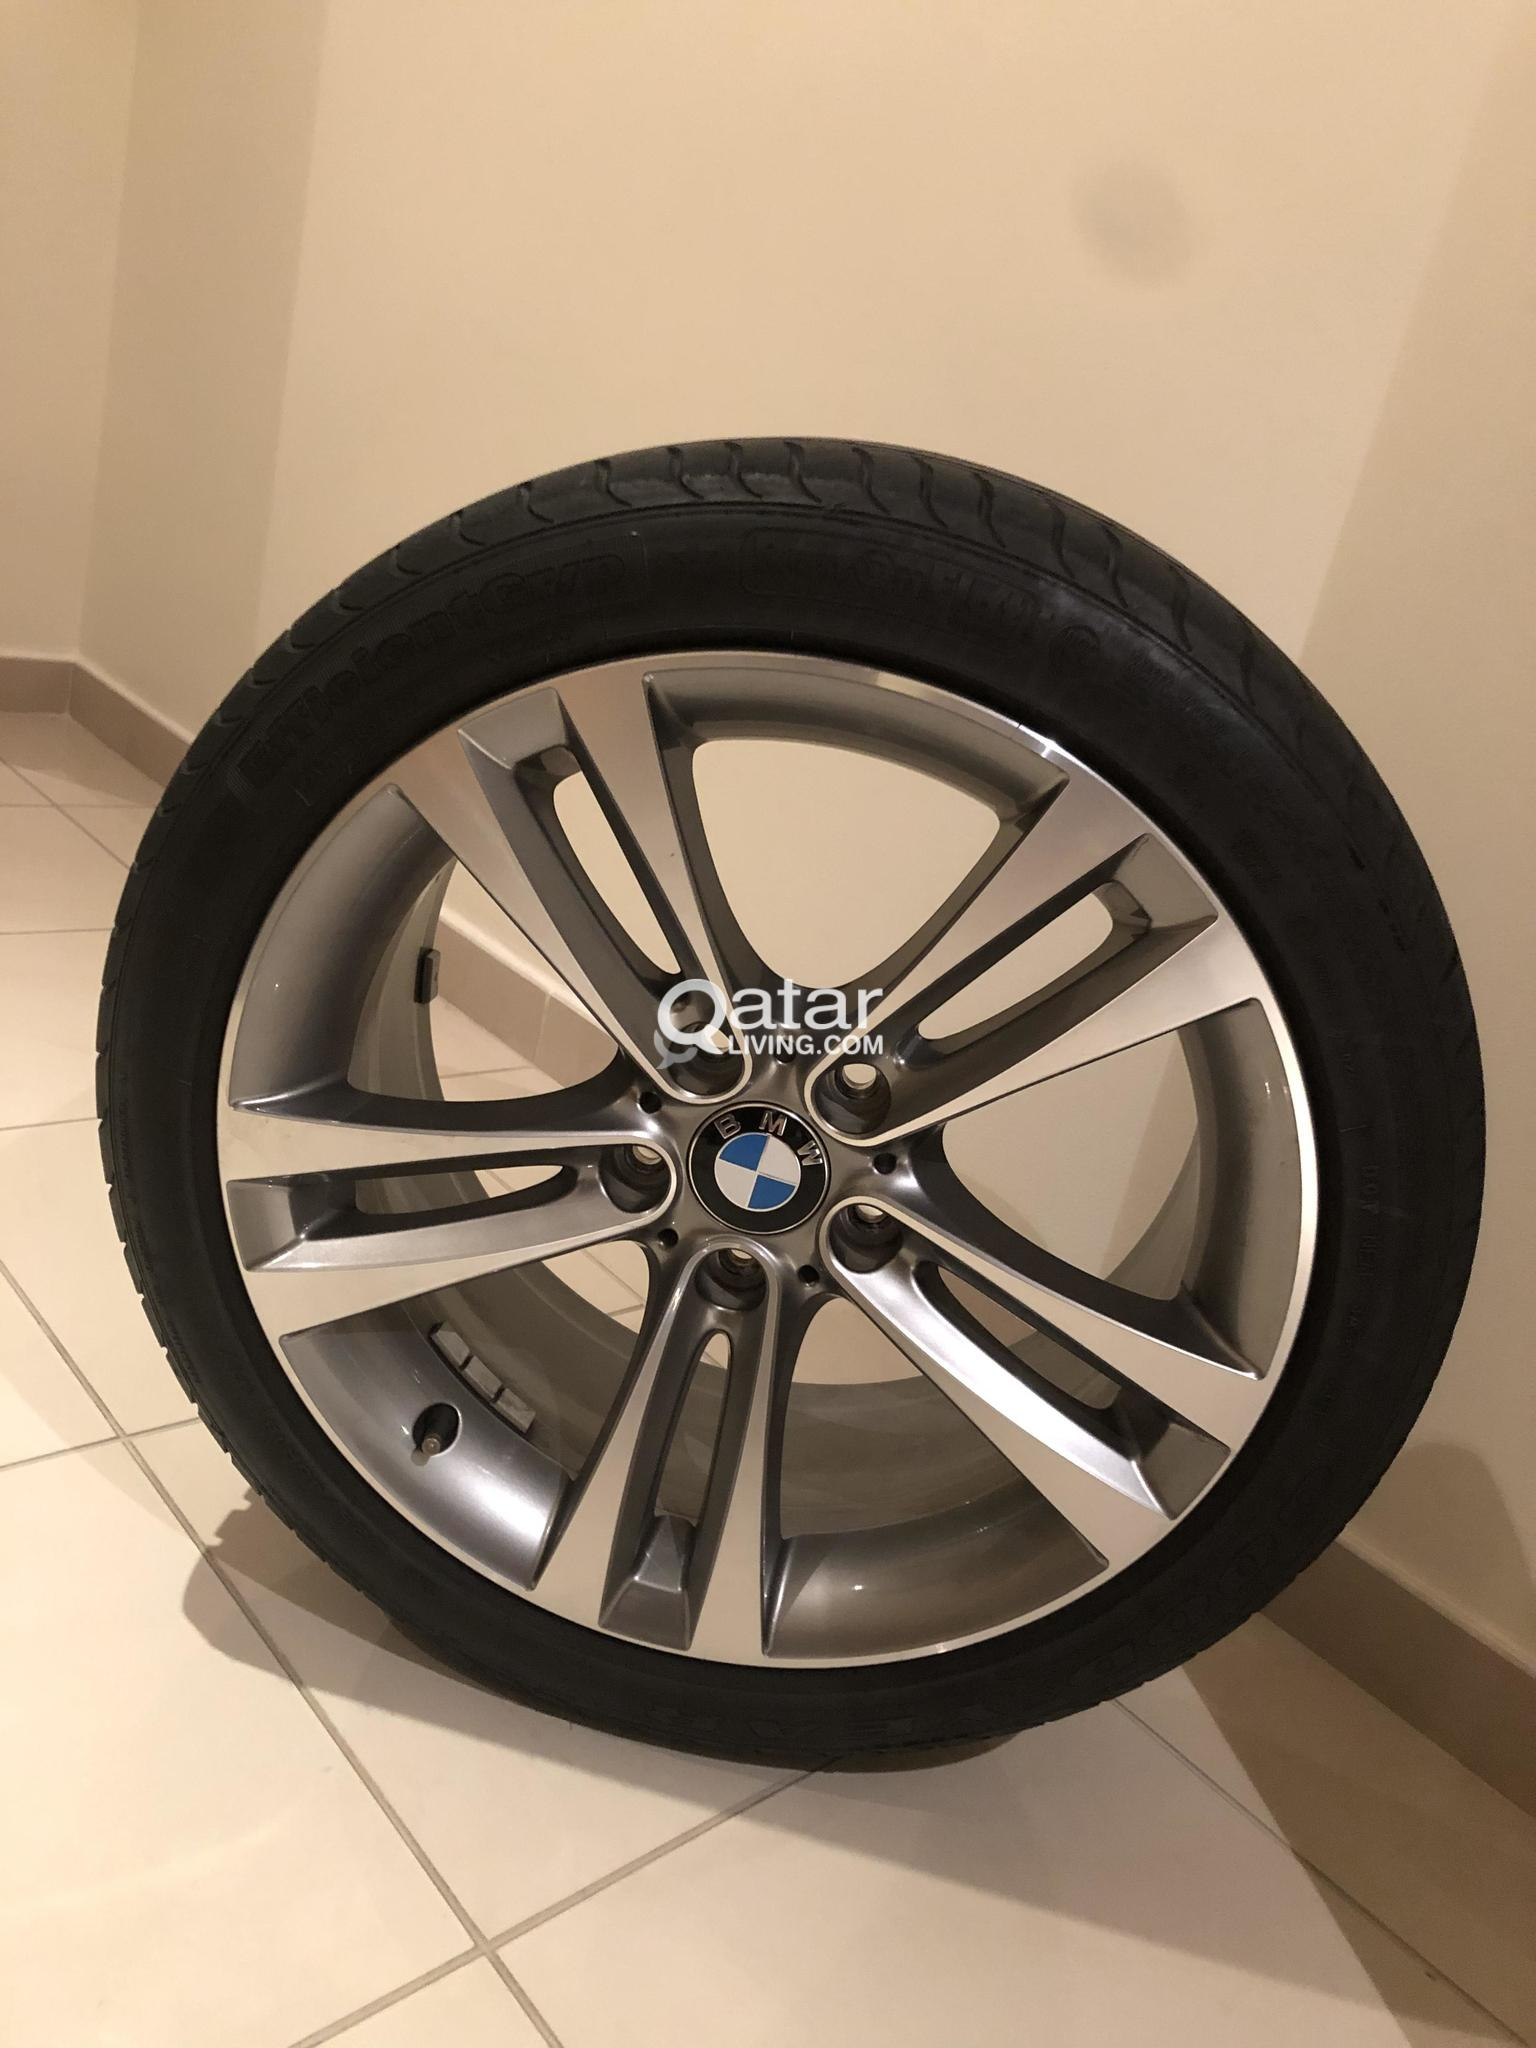 18 Inch Rims And Tires >> 4x18 Inch Bmw Rims Including Tires 225 45r18